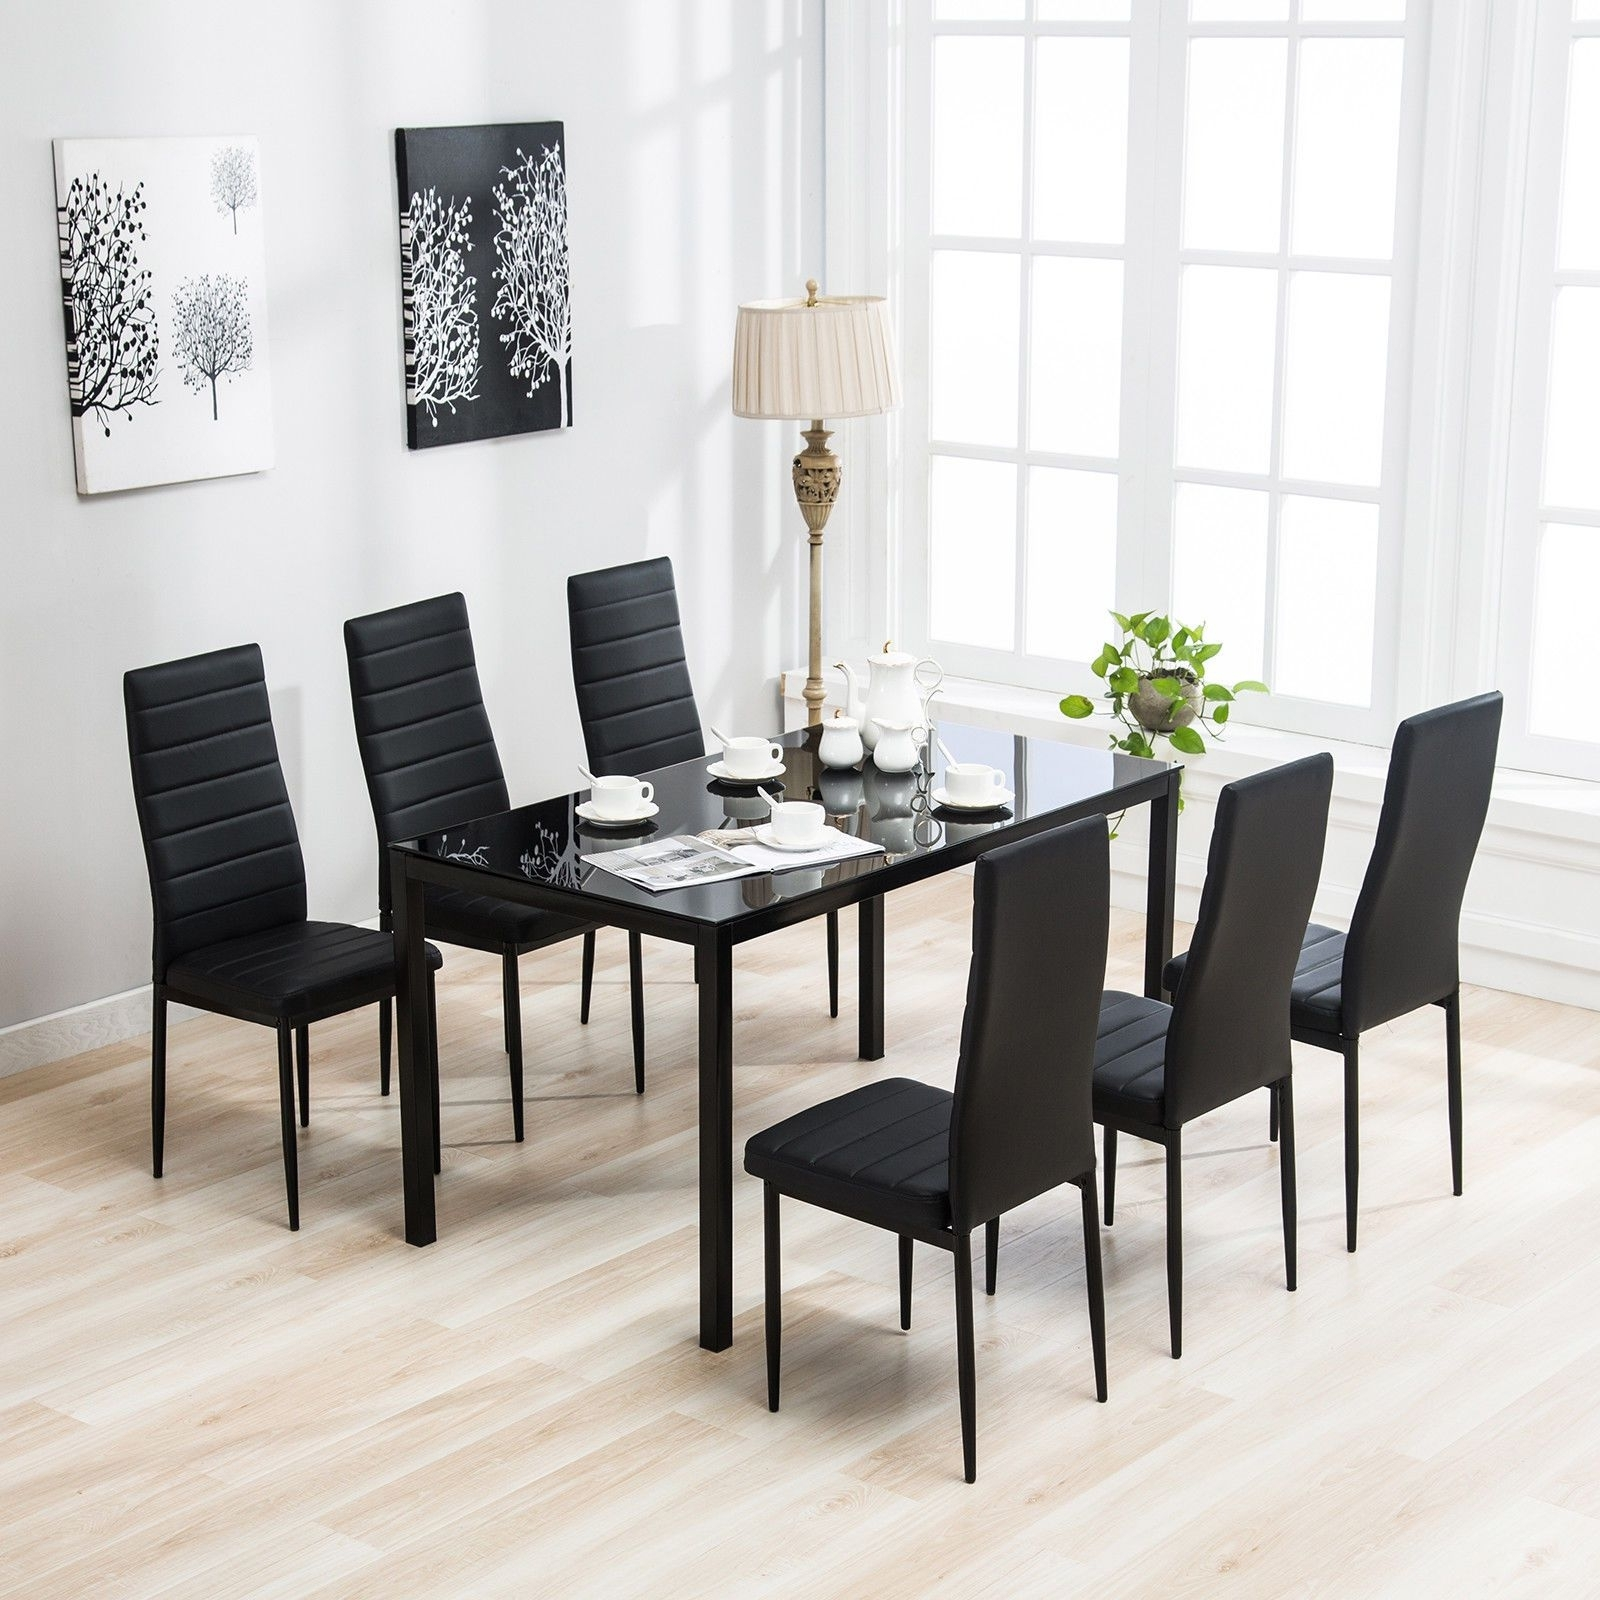 Current Glass Dining Tables 6 Chairs Inside 7 Piece Dining Table Set 6 Chairs Black Glass Metal Kitchen Room (Gallery 24 of 25)